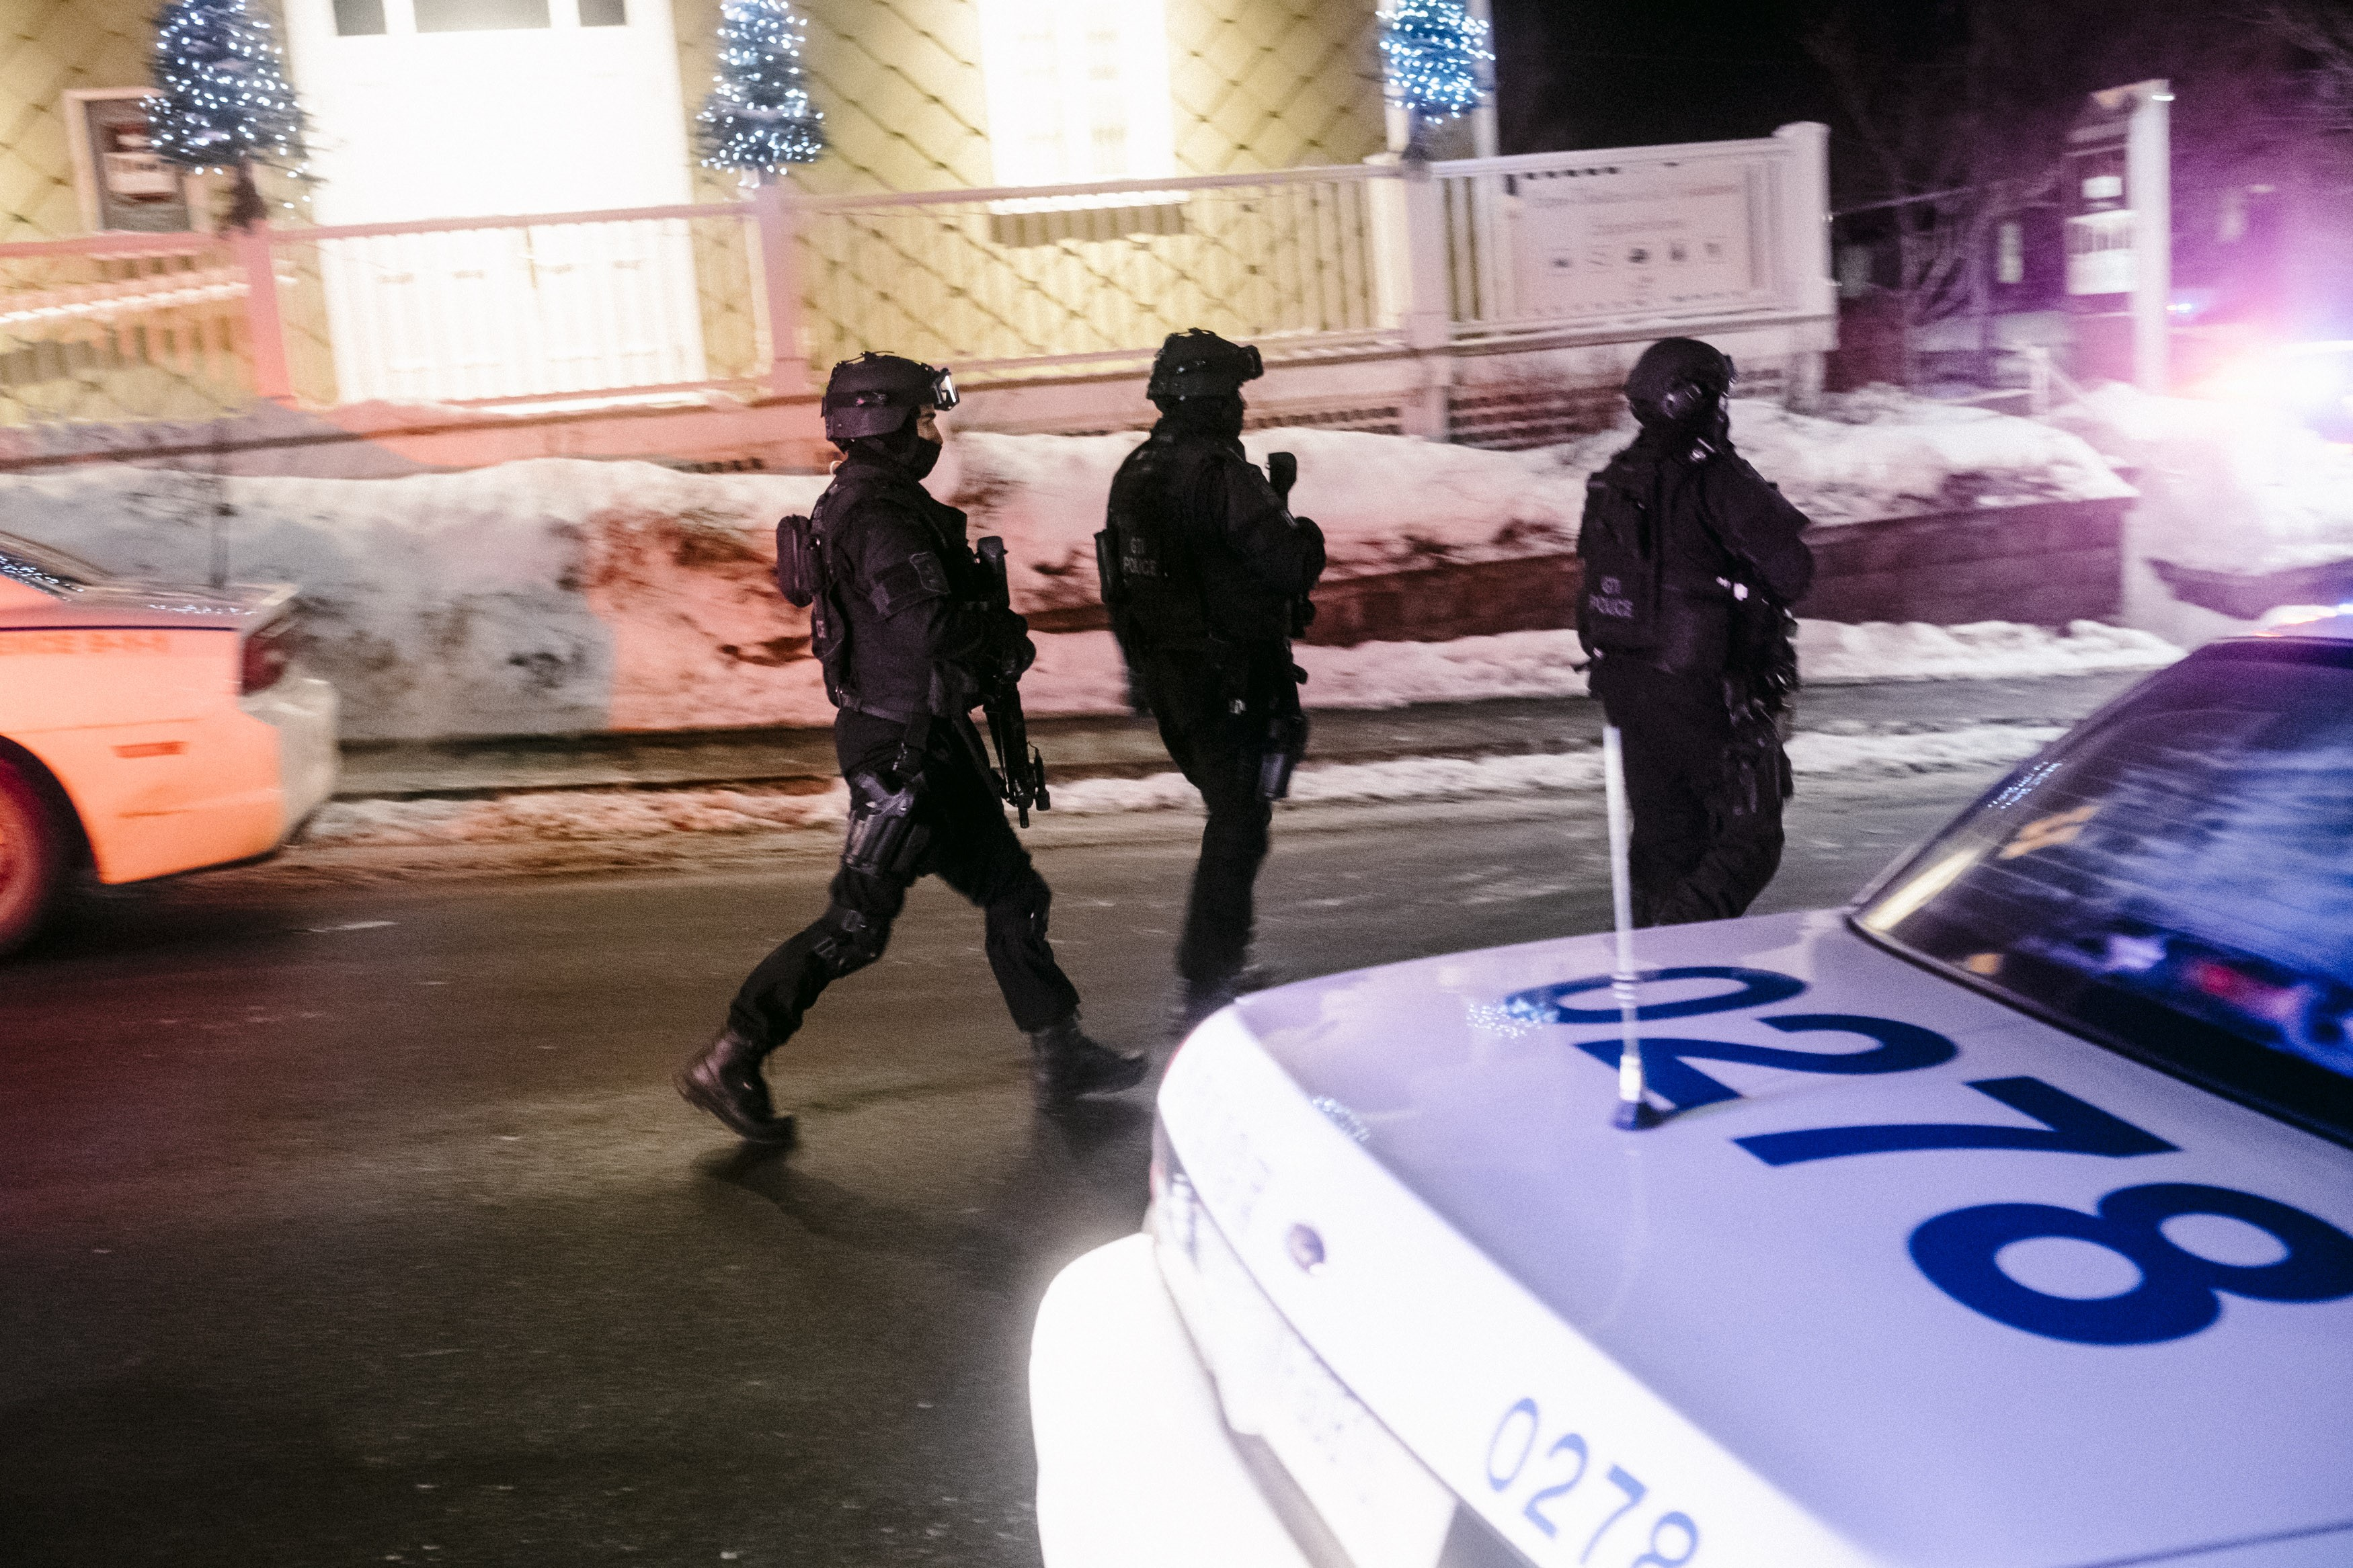 5 dead in Canadian mosque shooting